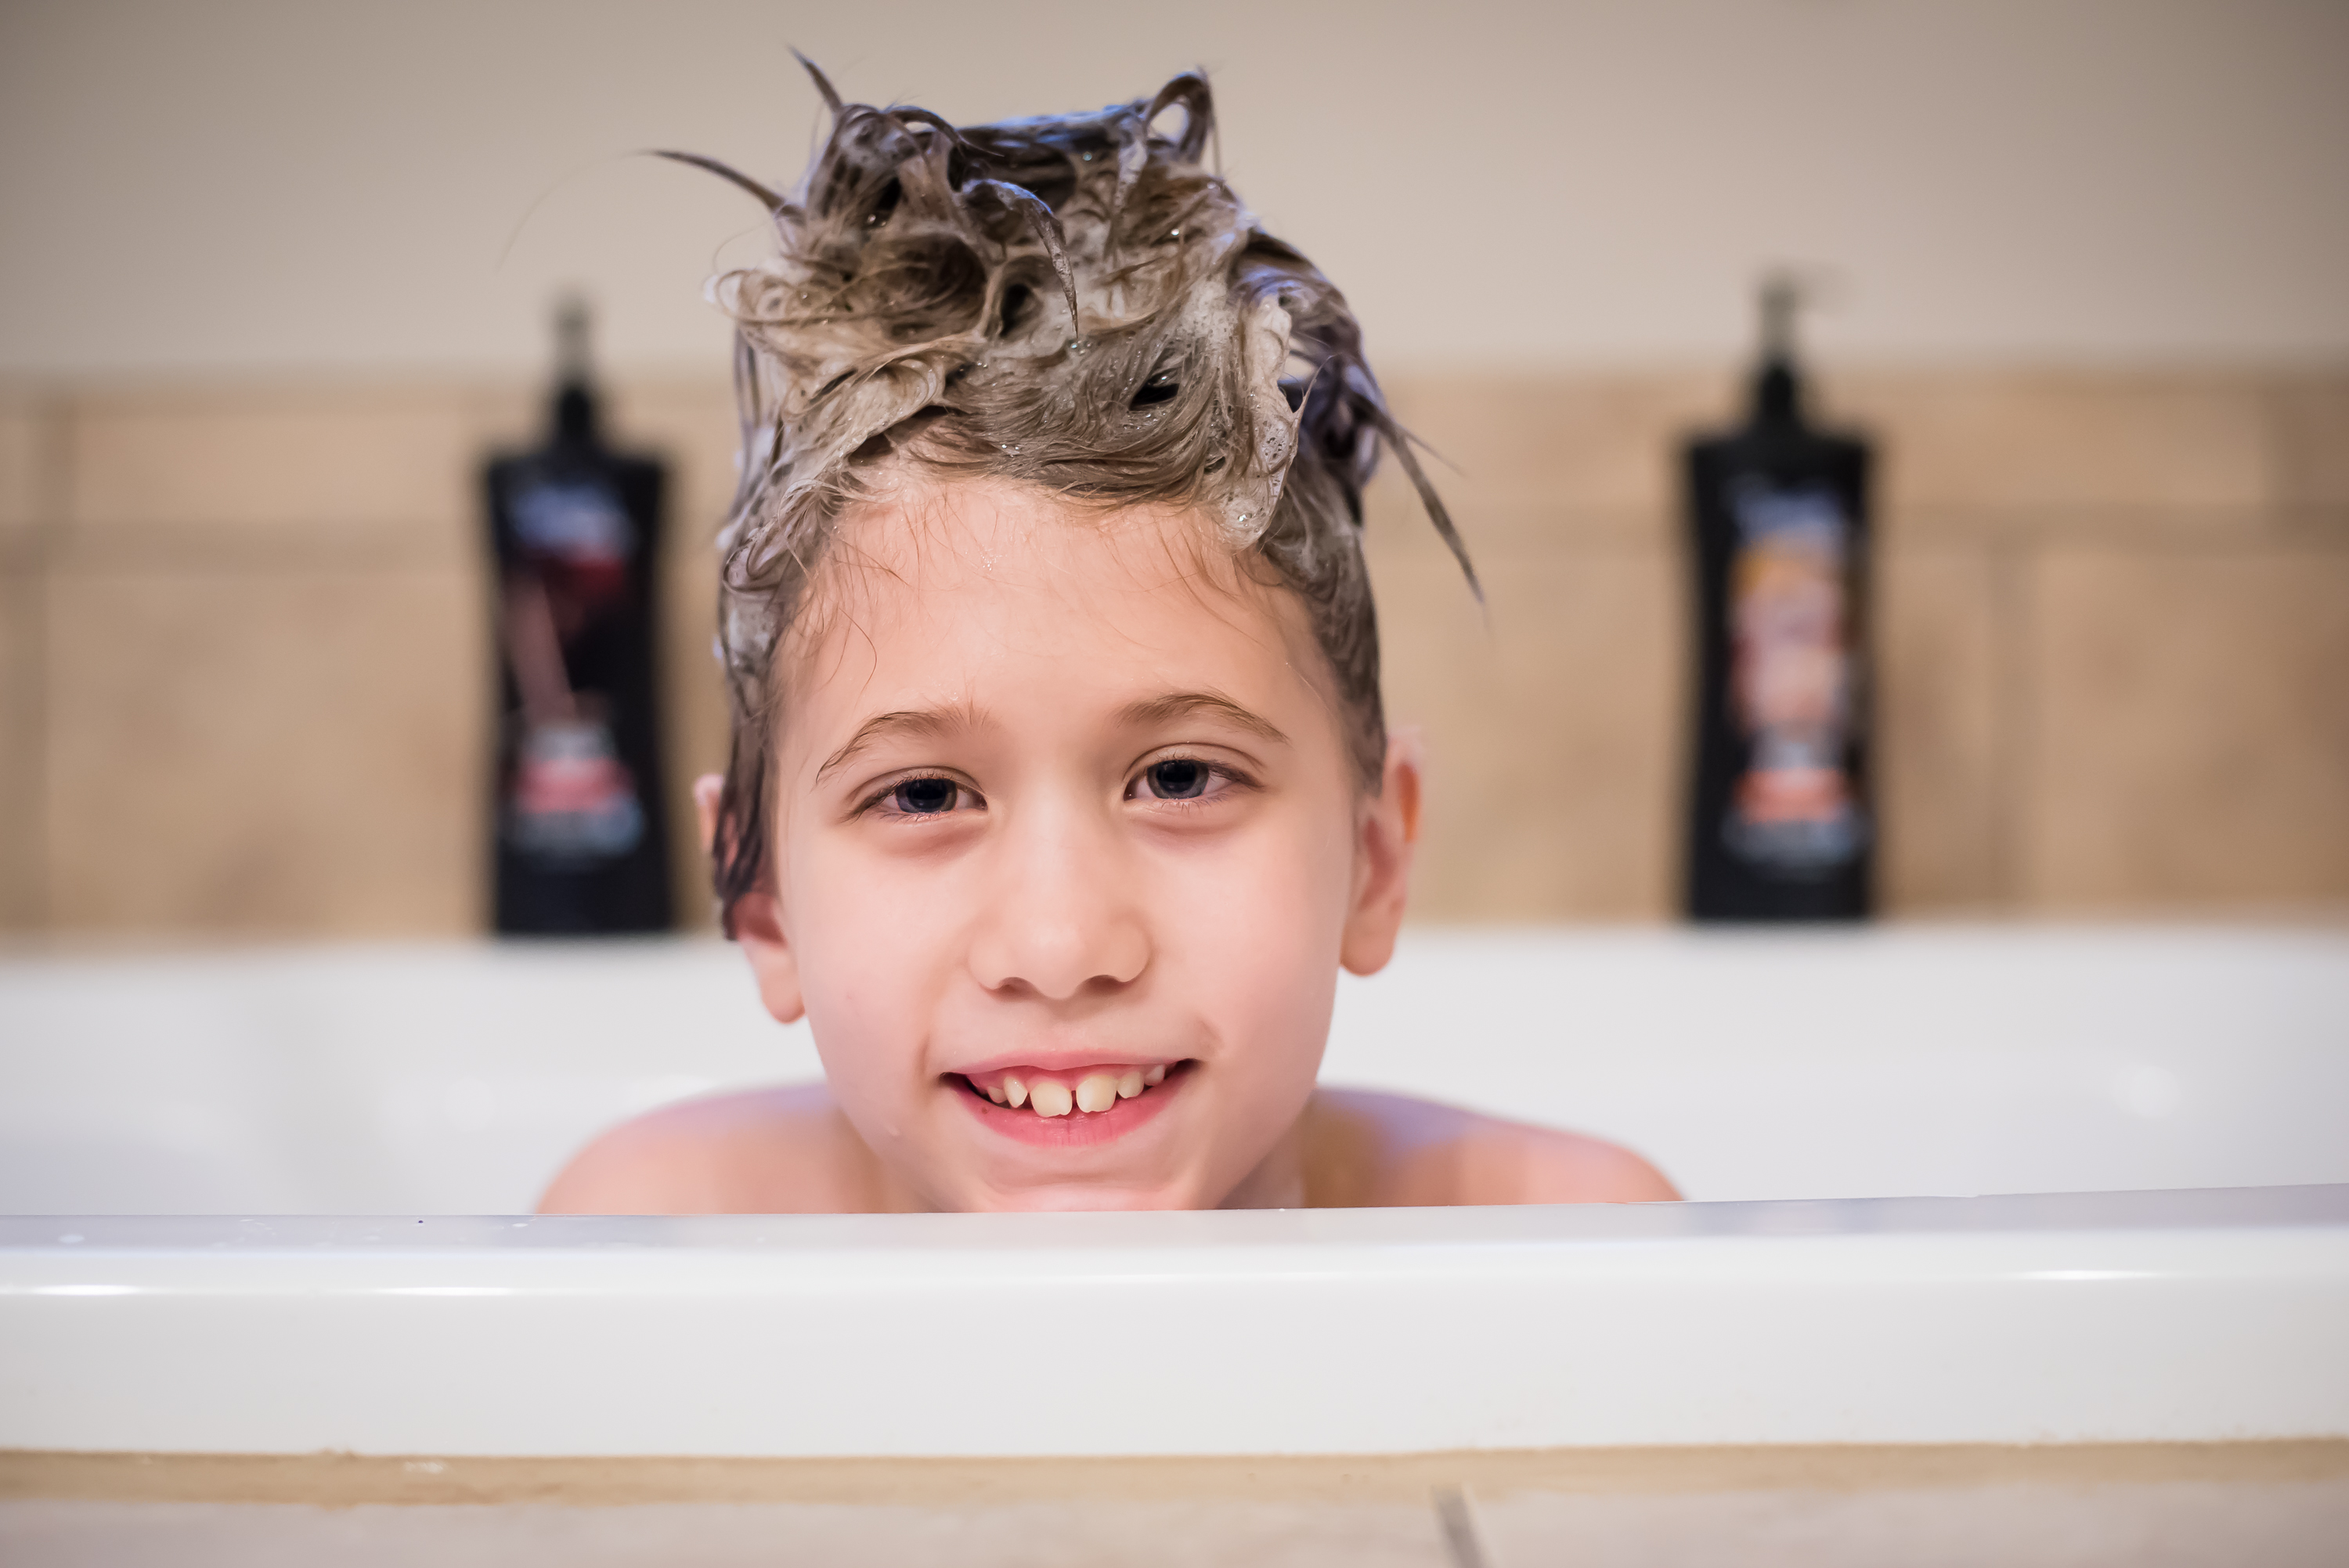 Bath Time Awakens with Suave Kids - Almost Supermom